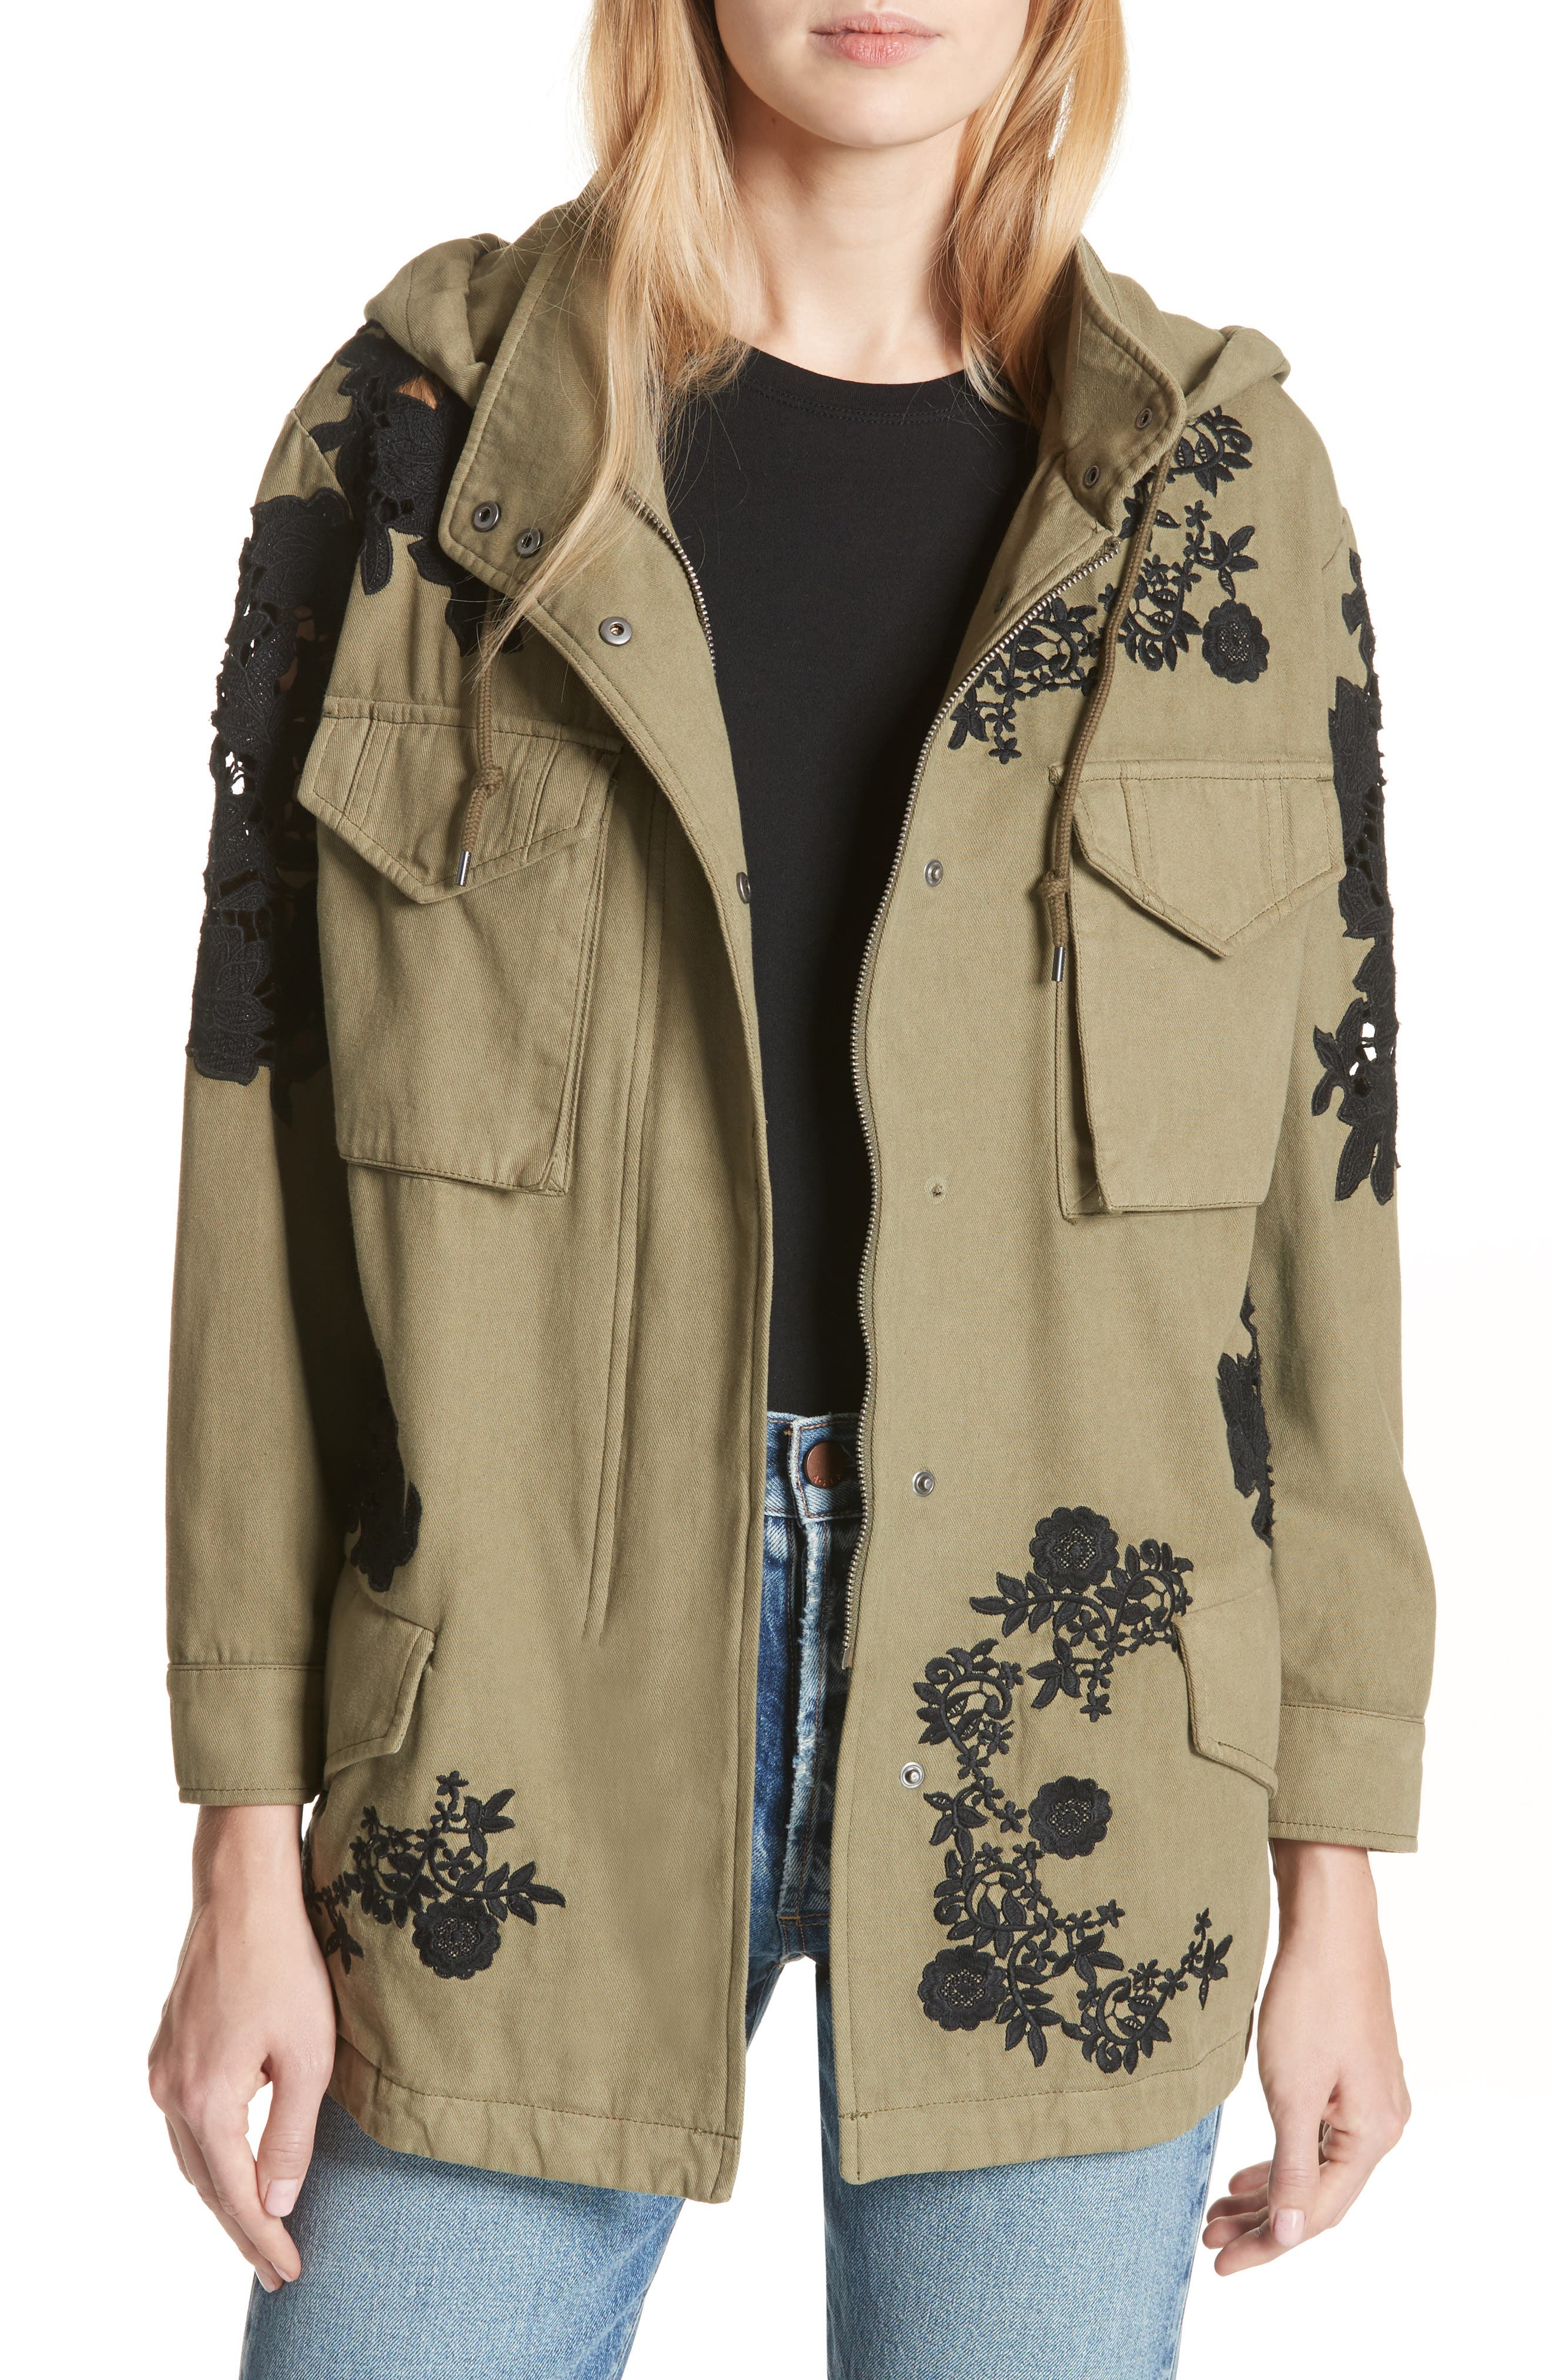 Meta Embroidered Utility Jacket,                             Main thumbnail 1, color,                             Olive/ Black